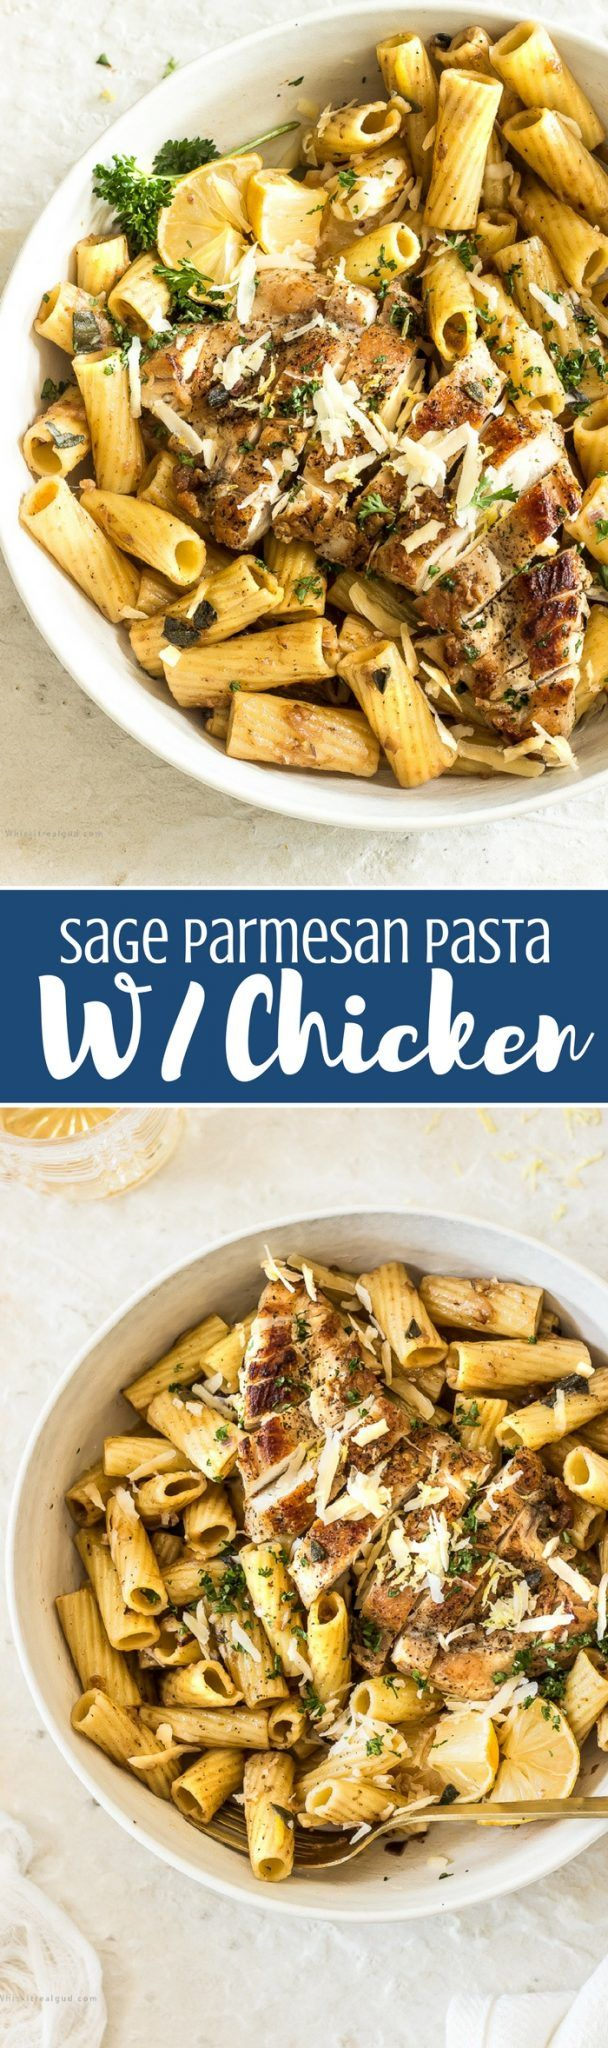 Pasta with fried, warm aromatic sage, Parmesan sauce, chicken and lemon zest is a DELICIOUS, quick and easy meal. Hectic day? This sage pasta is perfect for those busy weeknights or last-minute fridge clean.